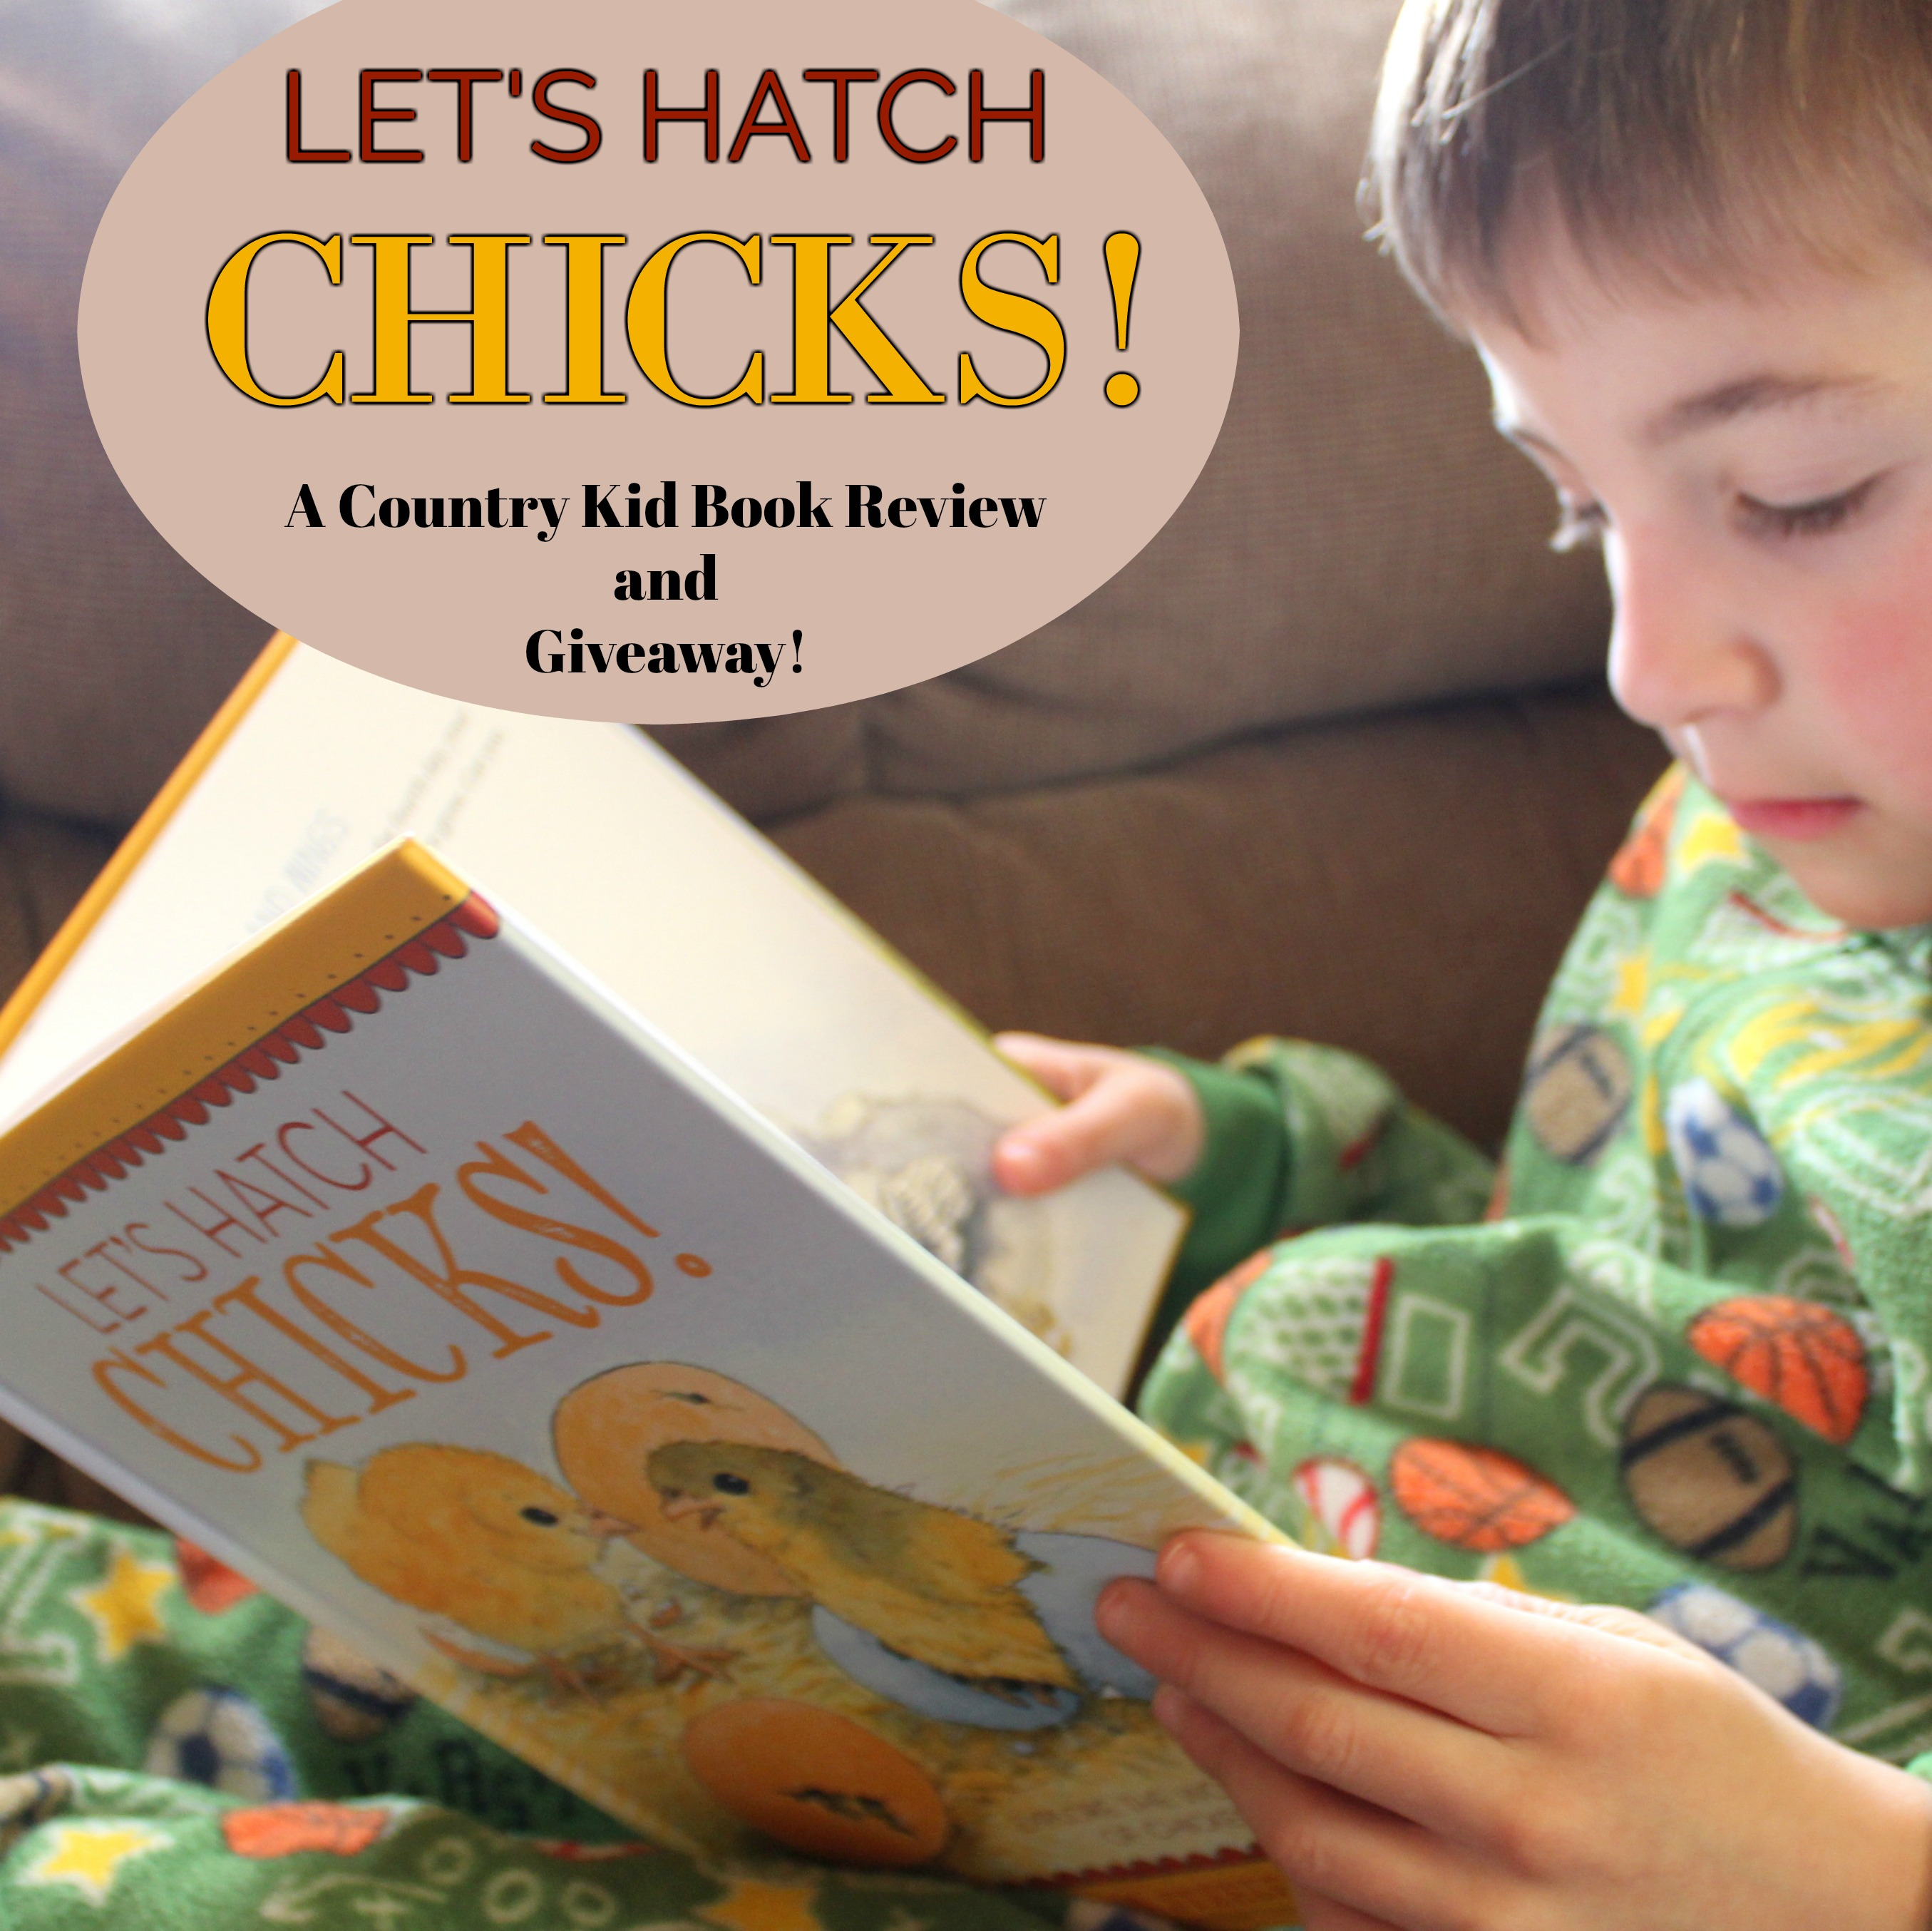 Let's Hatch Chicks Book Review